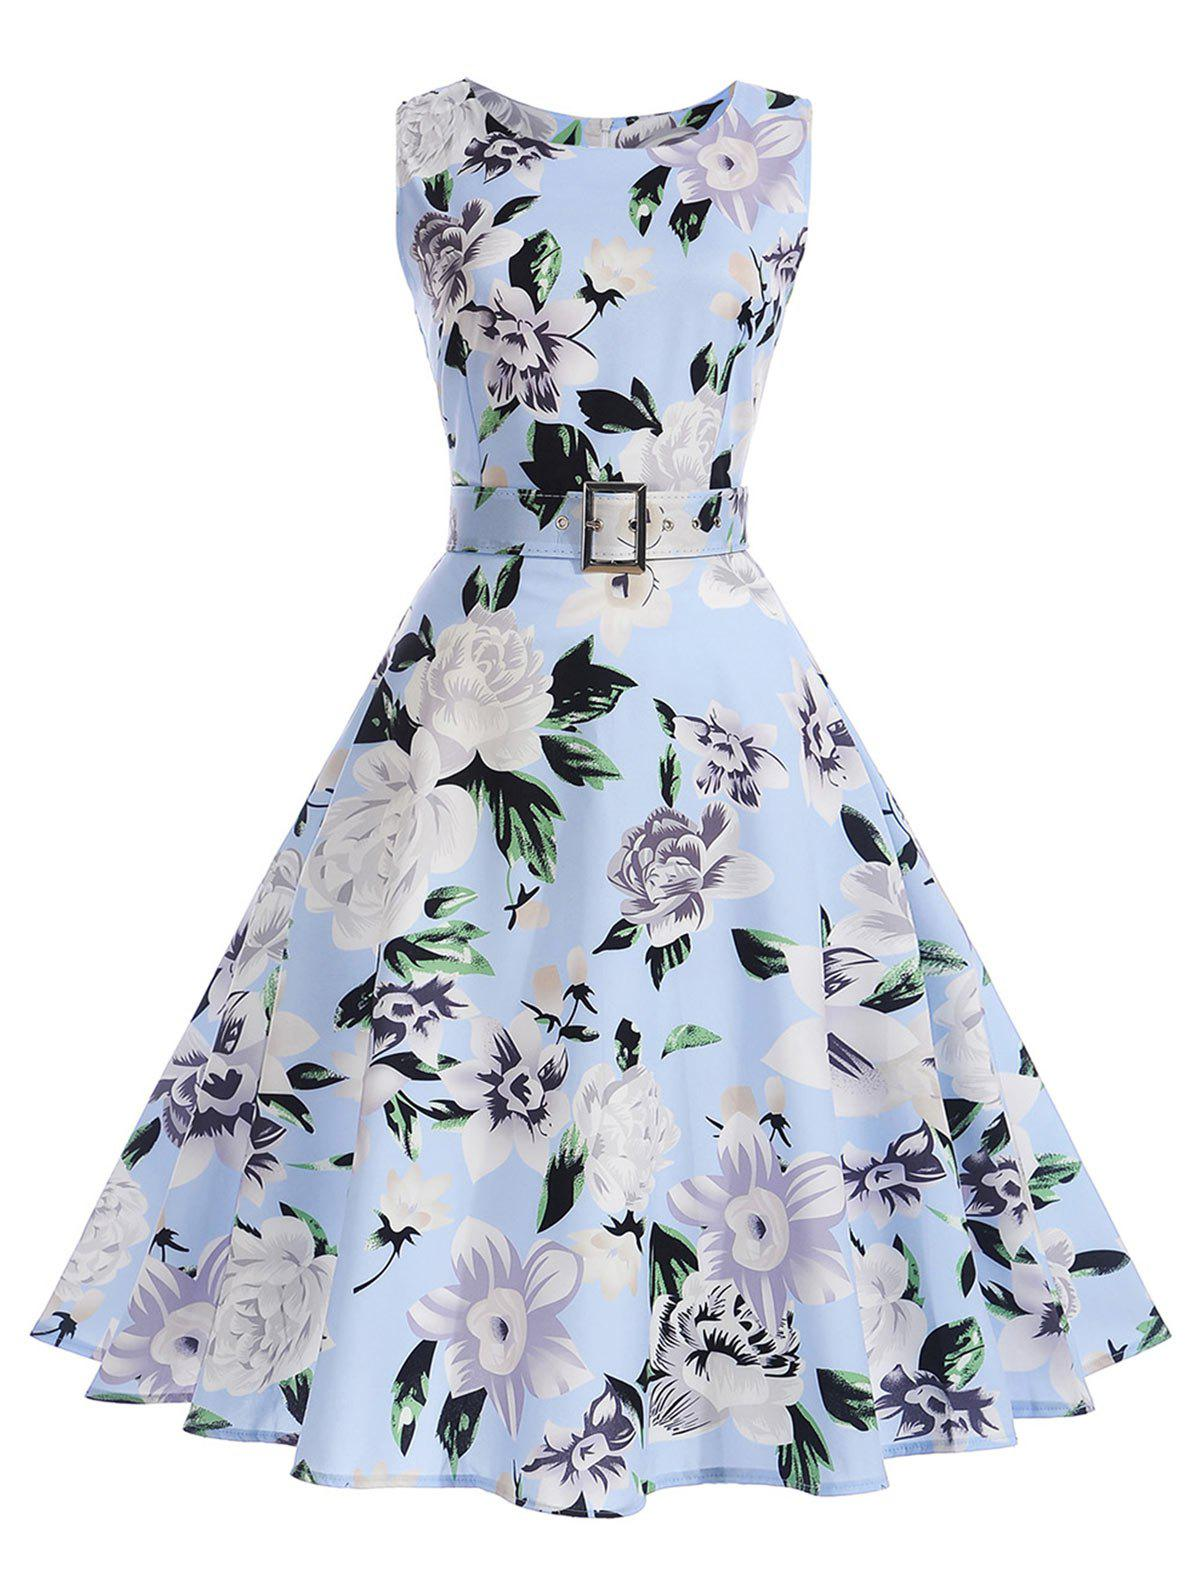 Vintage Floral Sleeveless A Line DressWOMEN<br><br>Size: 2XL; Color: SKY BLUE; Style: Vintage; Material: Polyester; Silhouette: A-Line; Dresses Length: Mid-Calf; Neckline: Round Collar; Sleeve Length: Sleeveless; Pattern Type: Floral; With Belt: Yes; Season: Summer; Weight: 0.3000kg; Package Contents: 1 x Dress  1 x Belt;